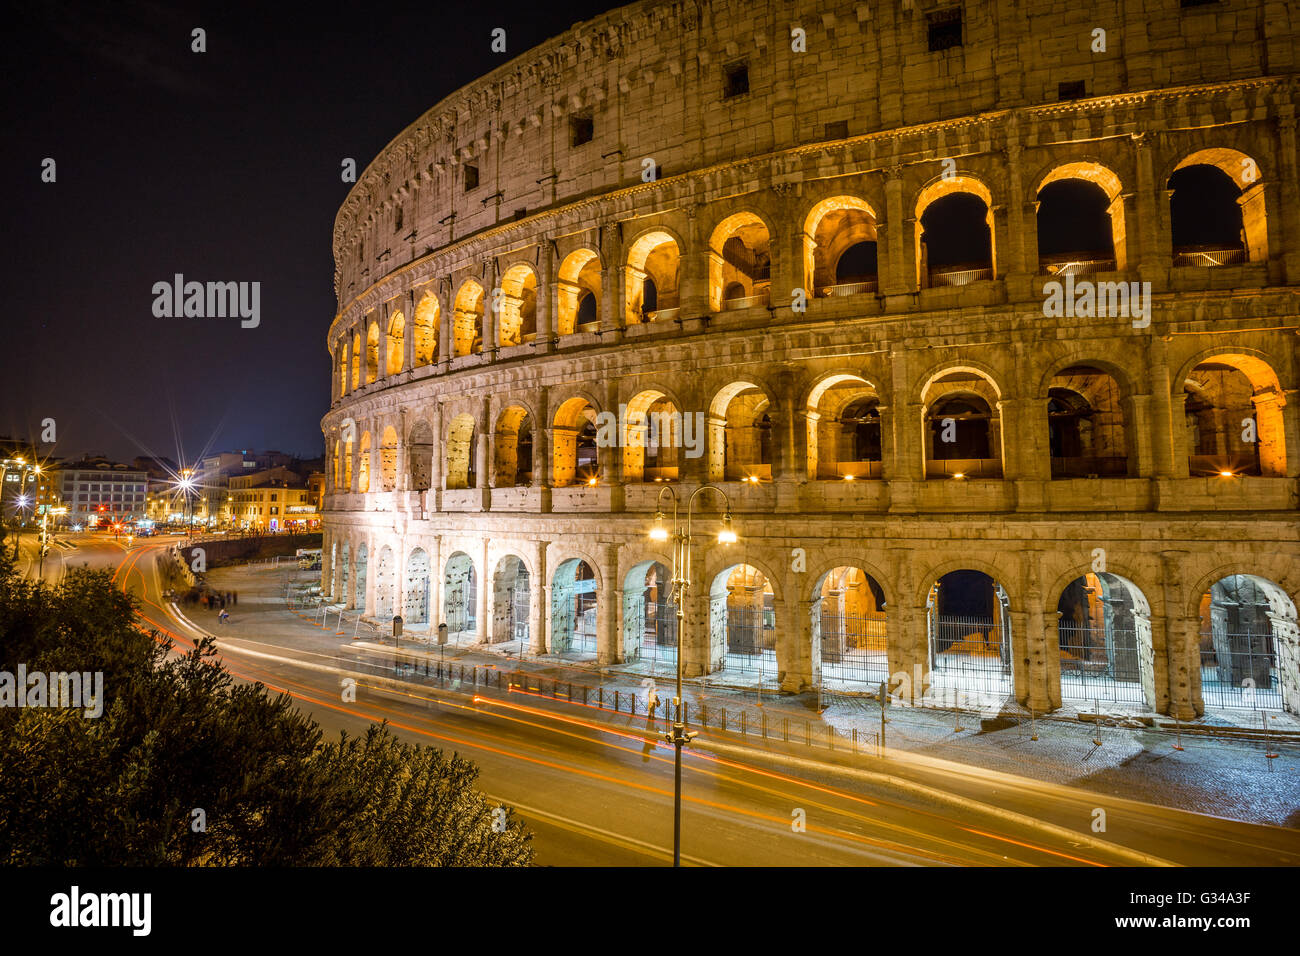 A Long Exposure of the Colosseum at Night in Rome, Italy - Stock Image